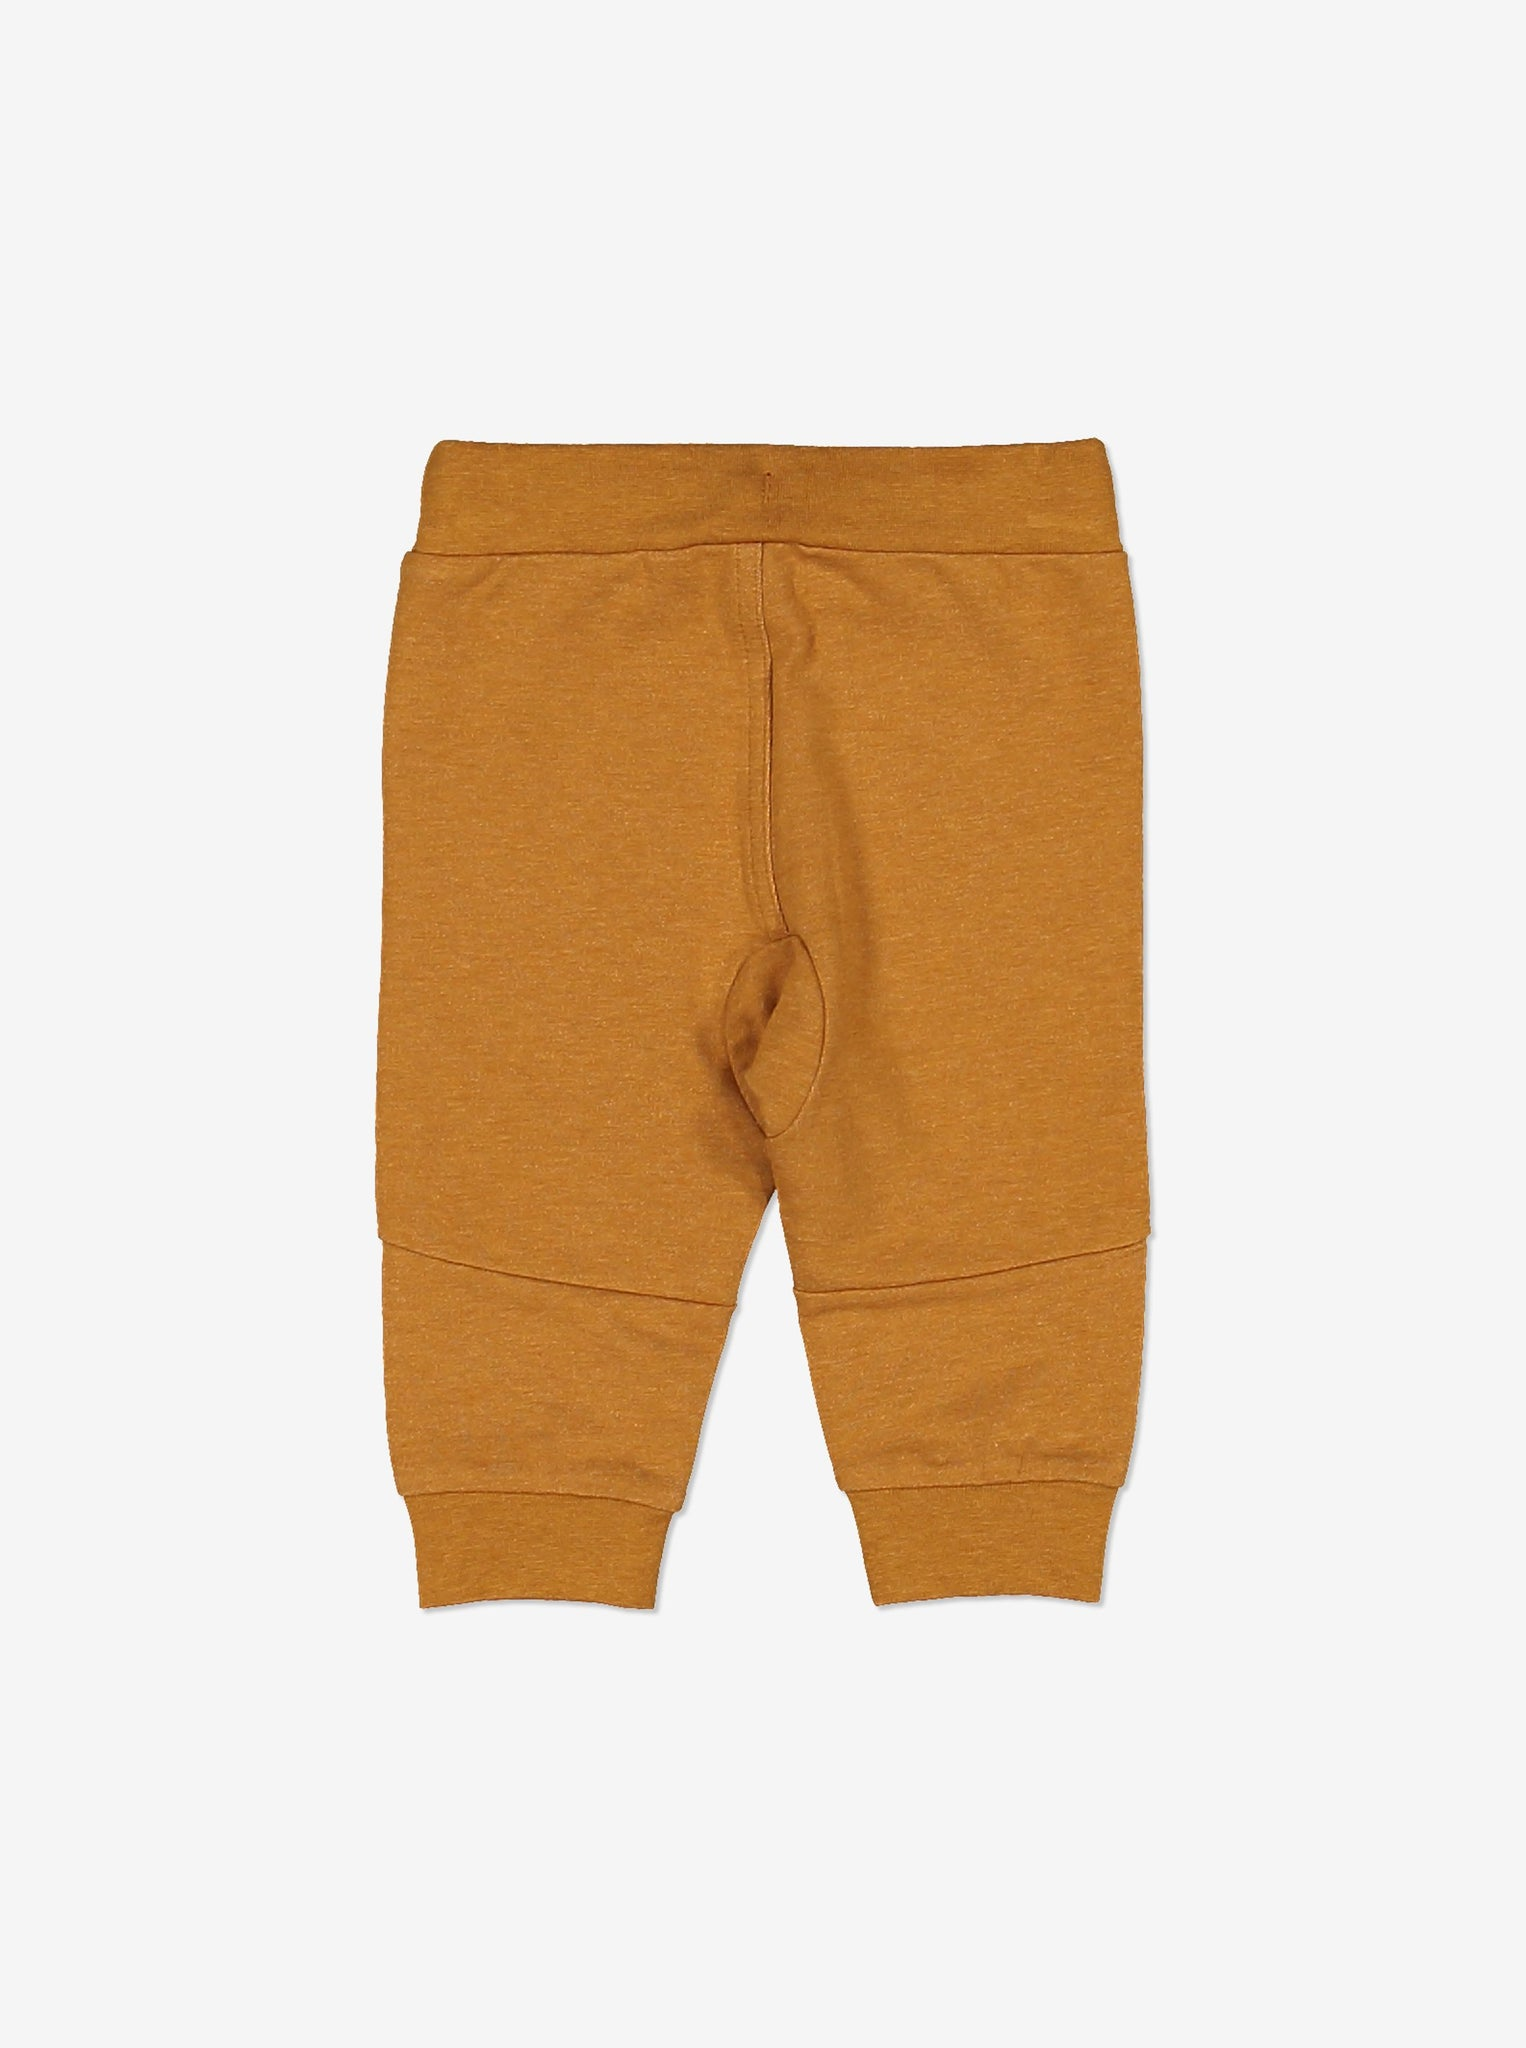 Back view of soft brown baby trousers in soft GOTS organic cotton. With contrast draw sting waist, two front pockets and ribbed cuffs to keep them in place.